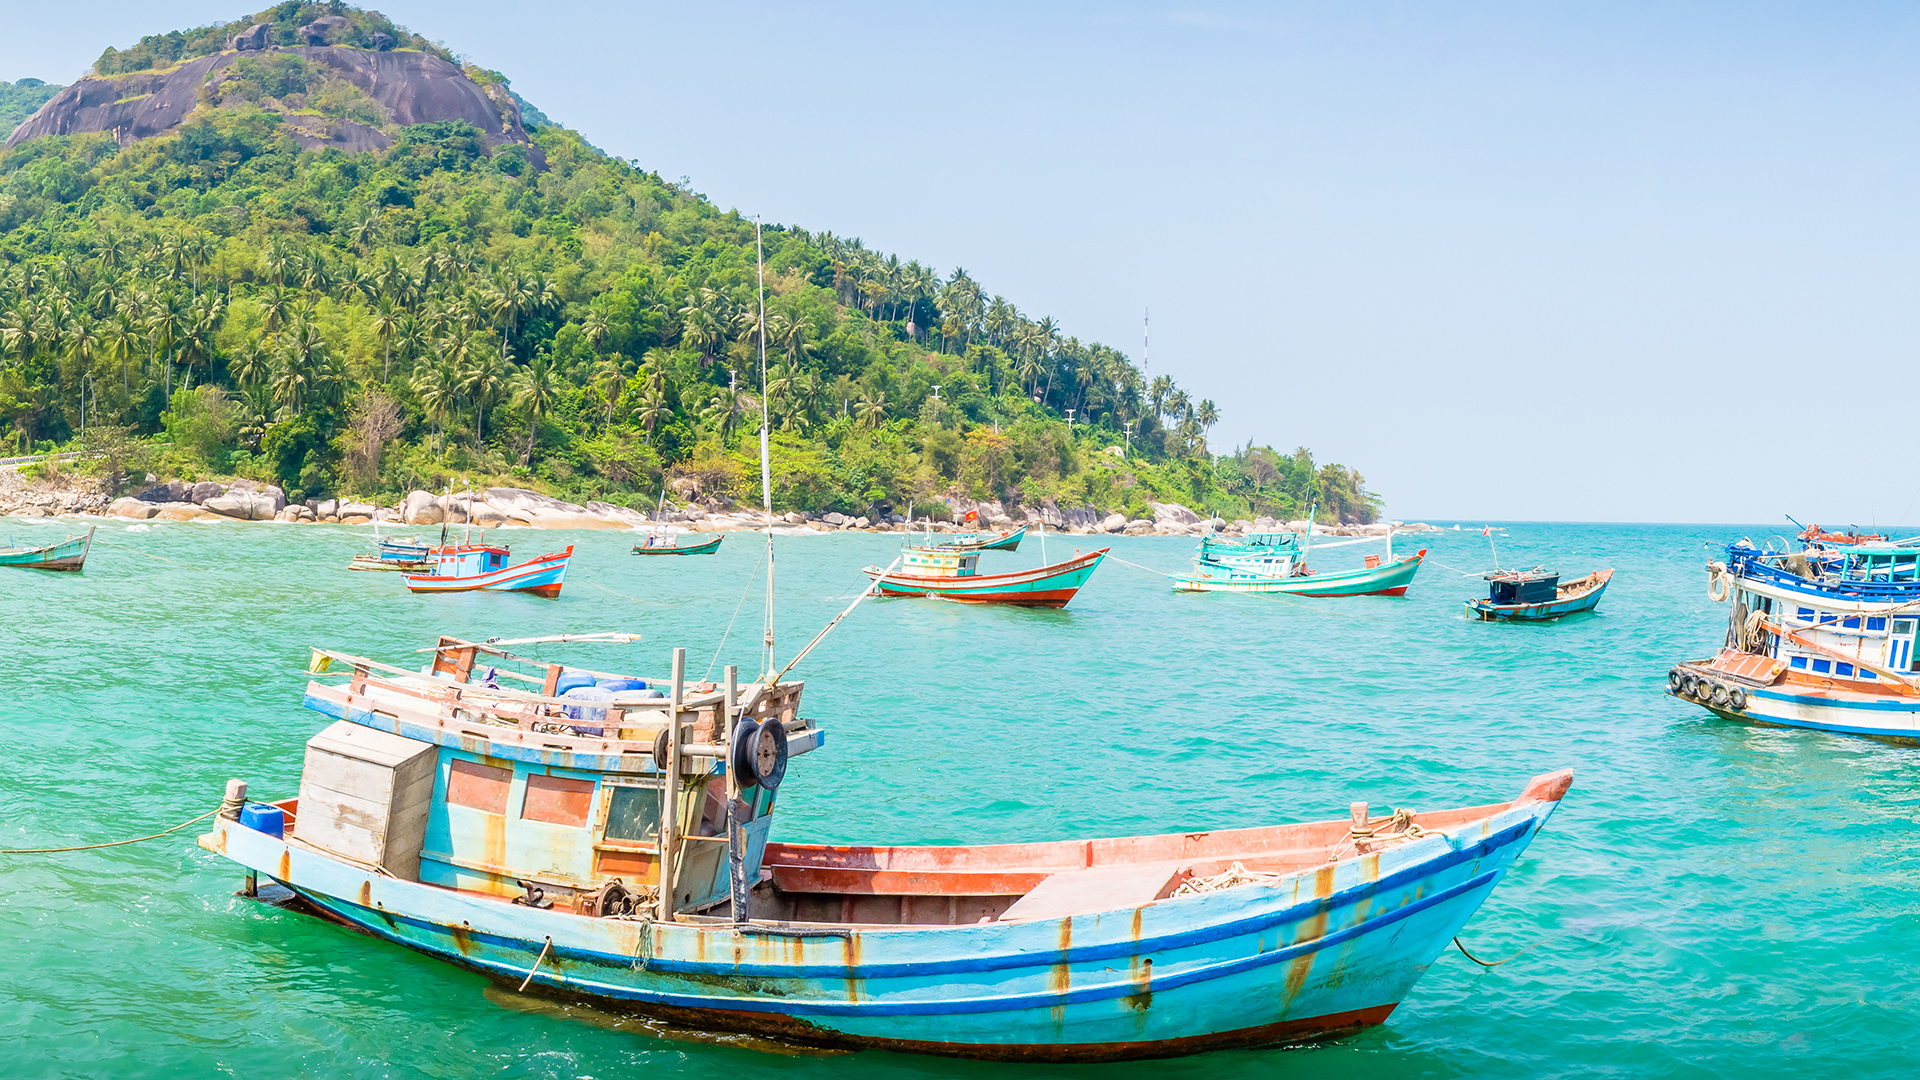 Fishing boats off the coast of Vietnam